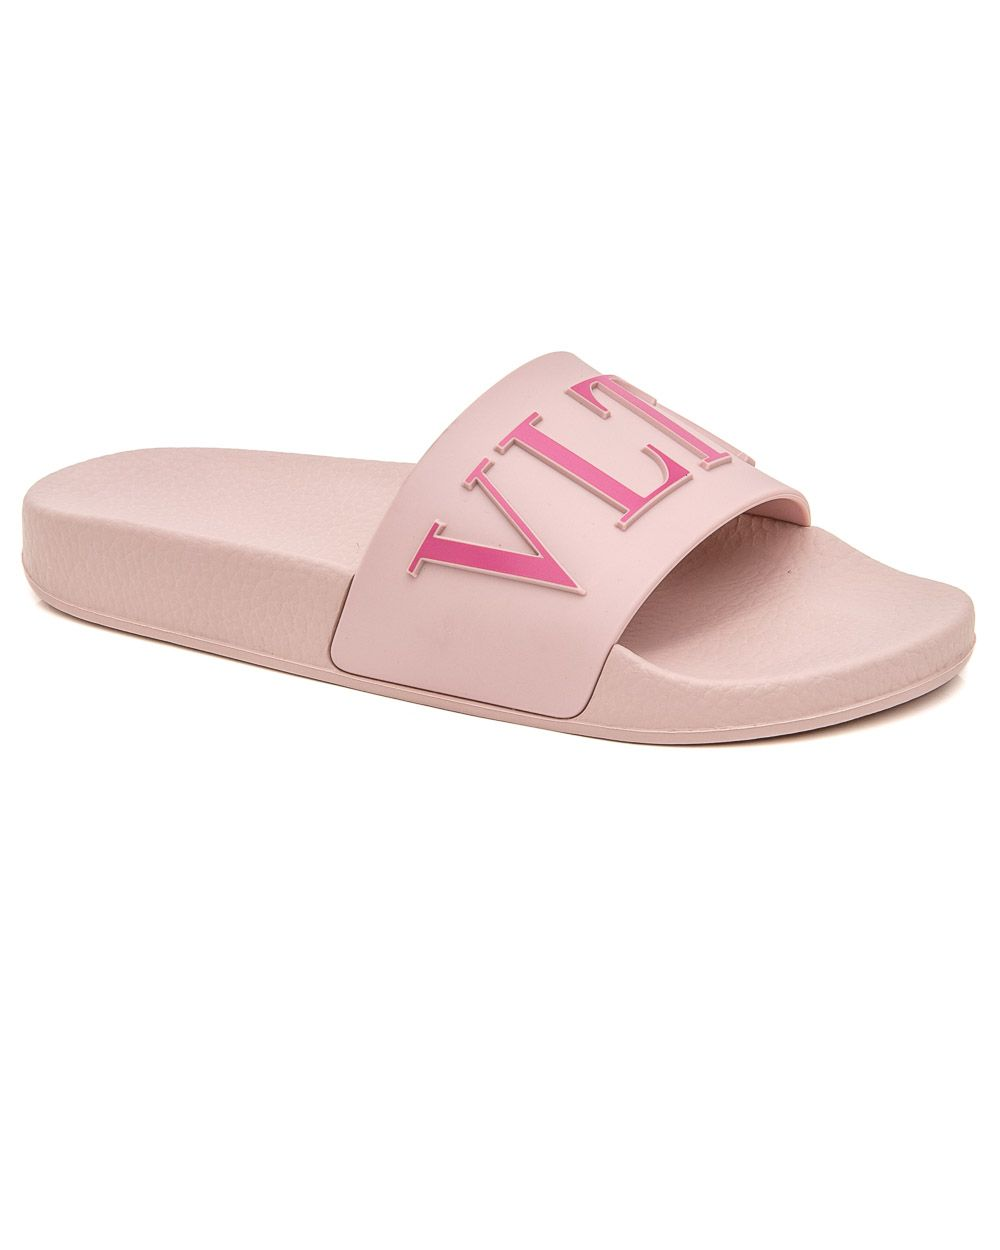 e8055341a4f Valentino Garavani Water Rose VLTN Slide Sandal Rubber upper Slip on style  Wide toe band VLTN logo Rounded open toe Molded rubber insole Rubber sole  Made in ...